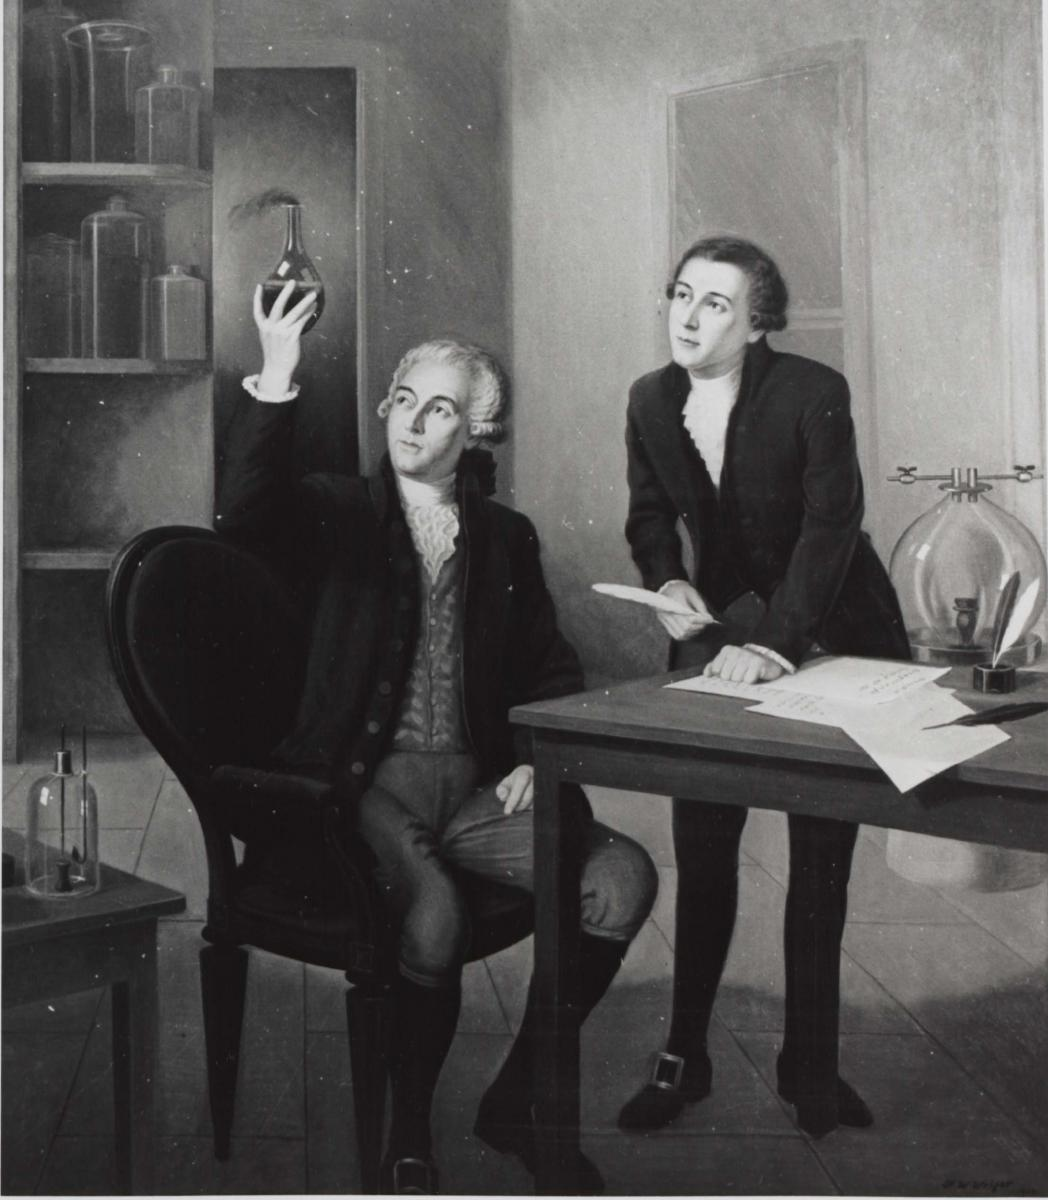 Lavoisier and du Pont study chemistry together